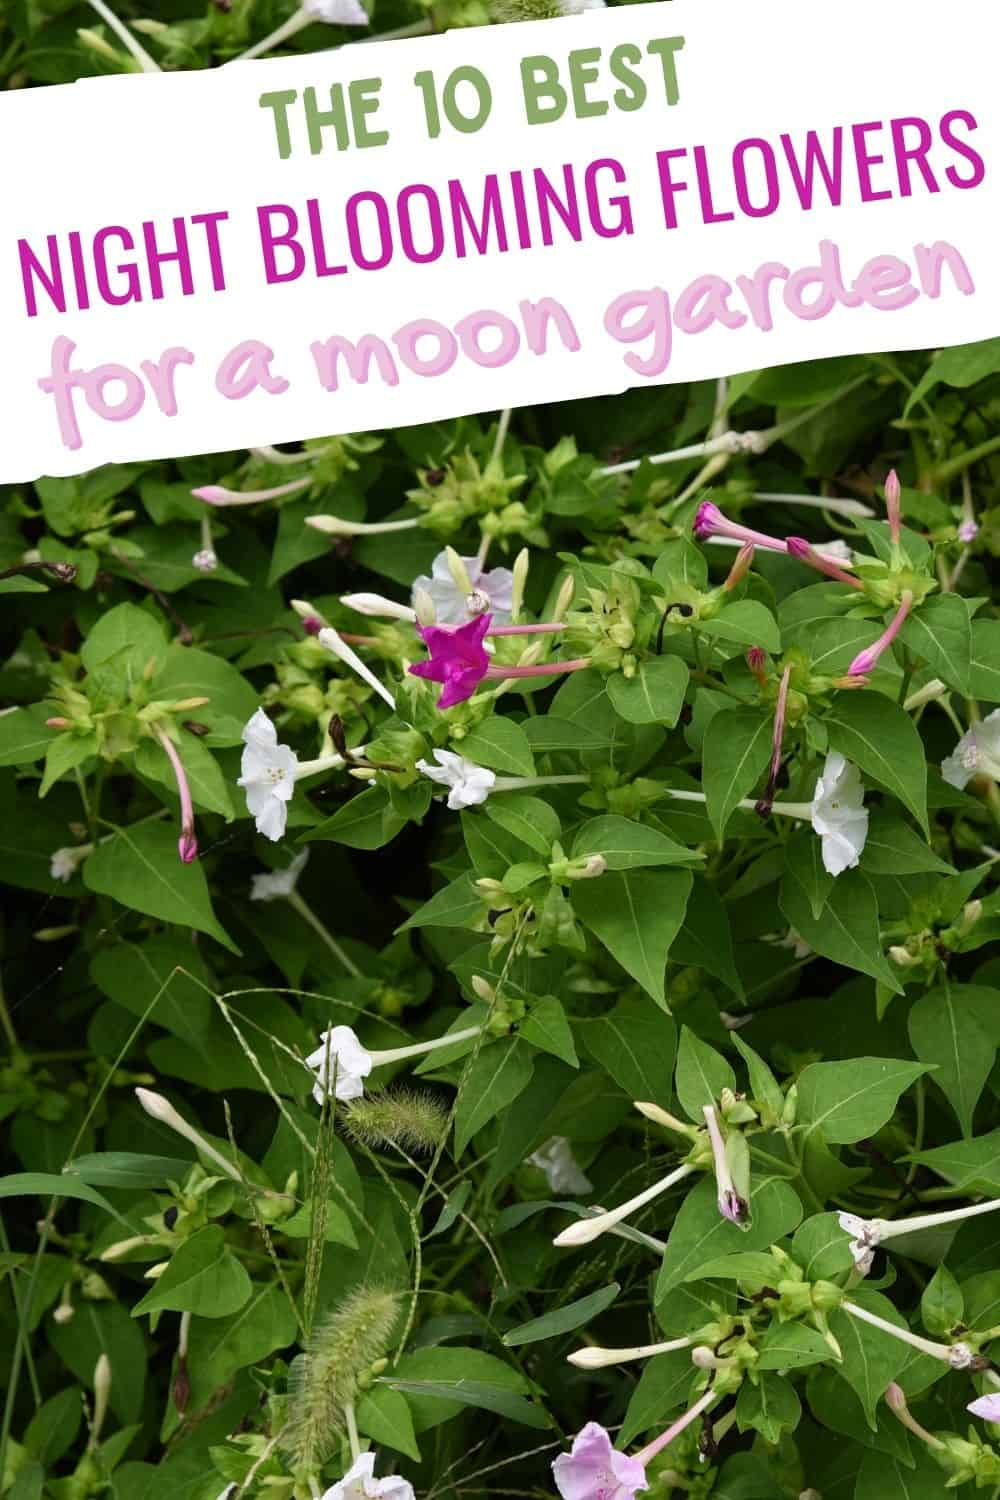 The 10 best night blooming flowers for a moon garden